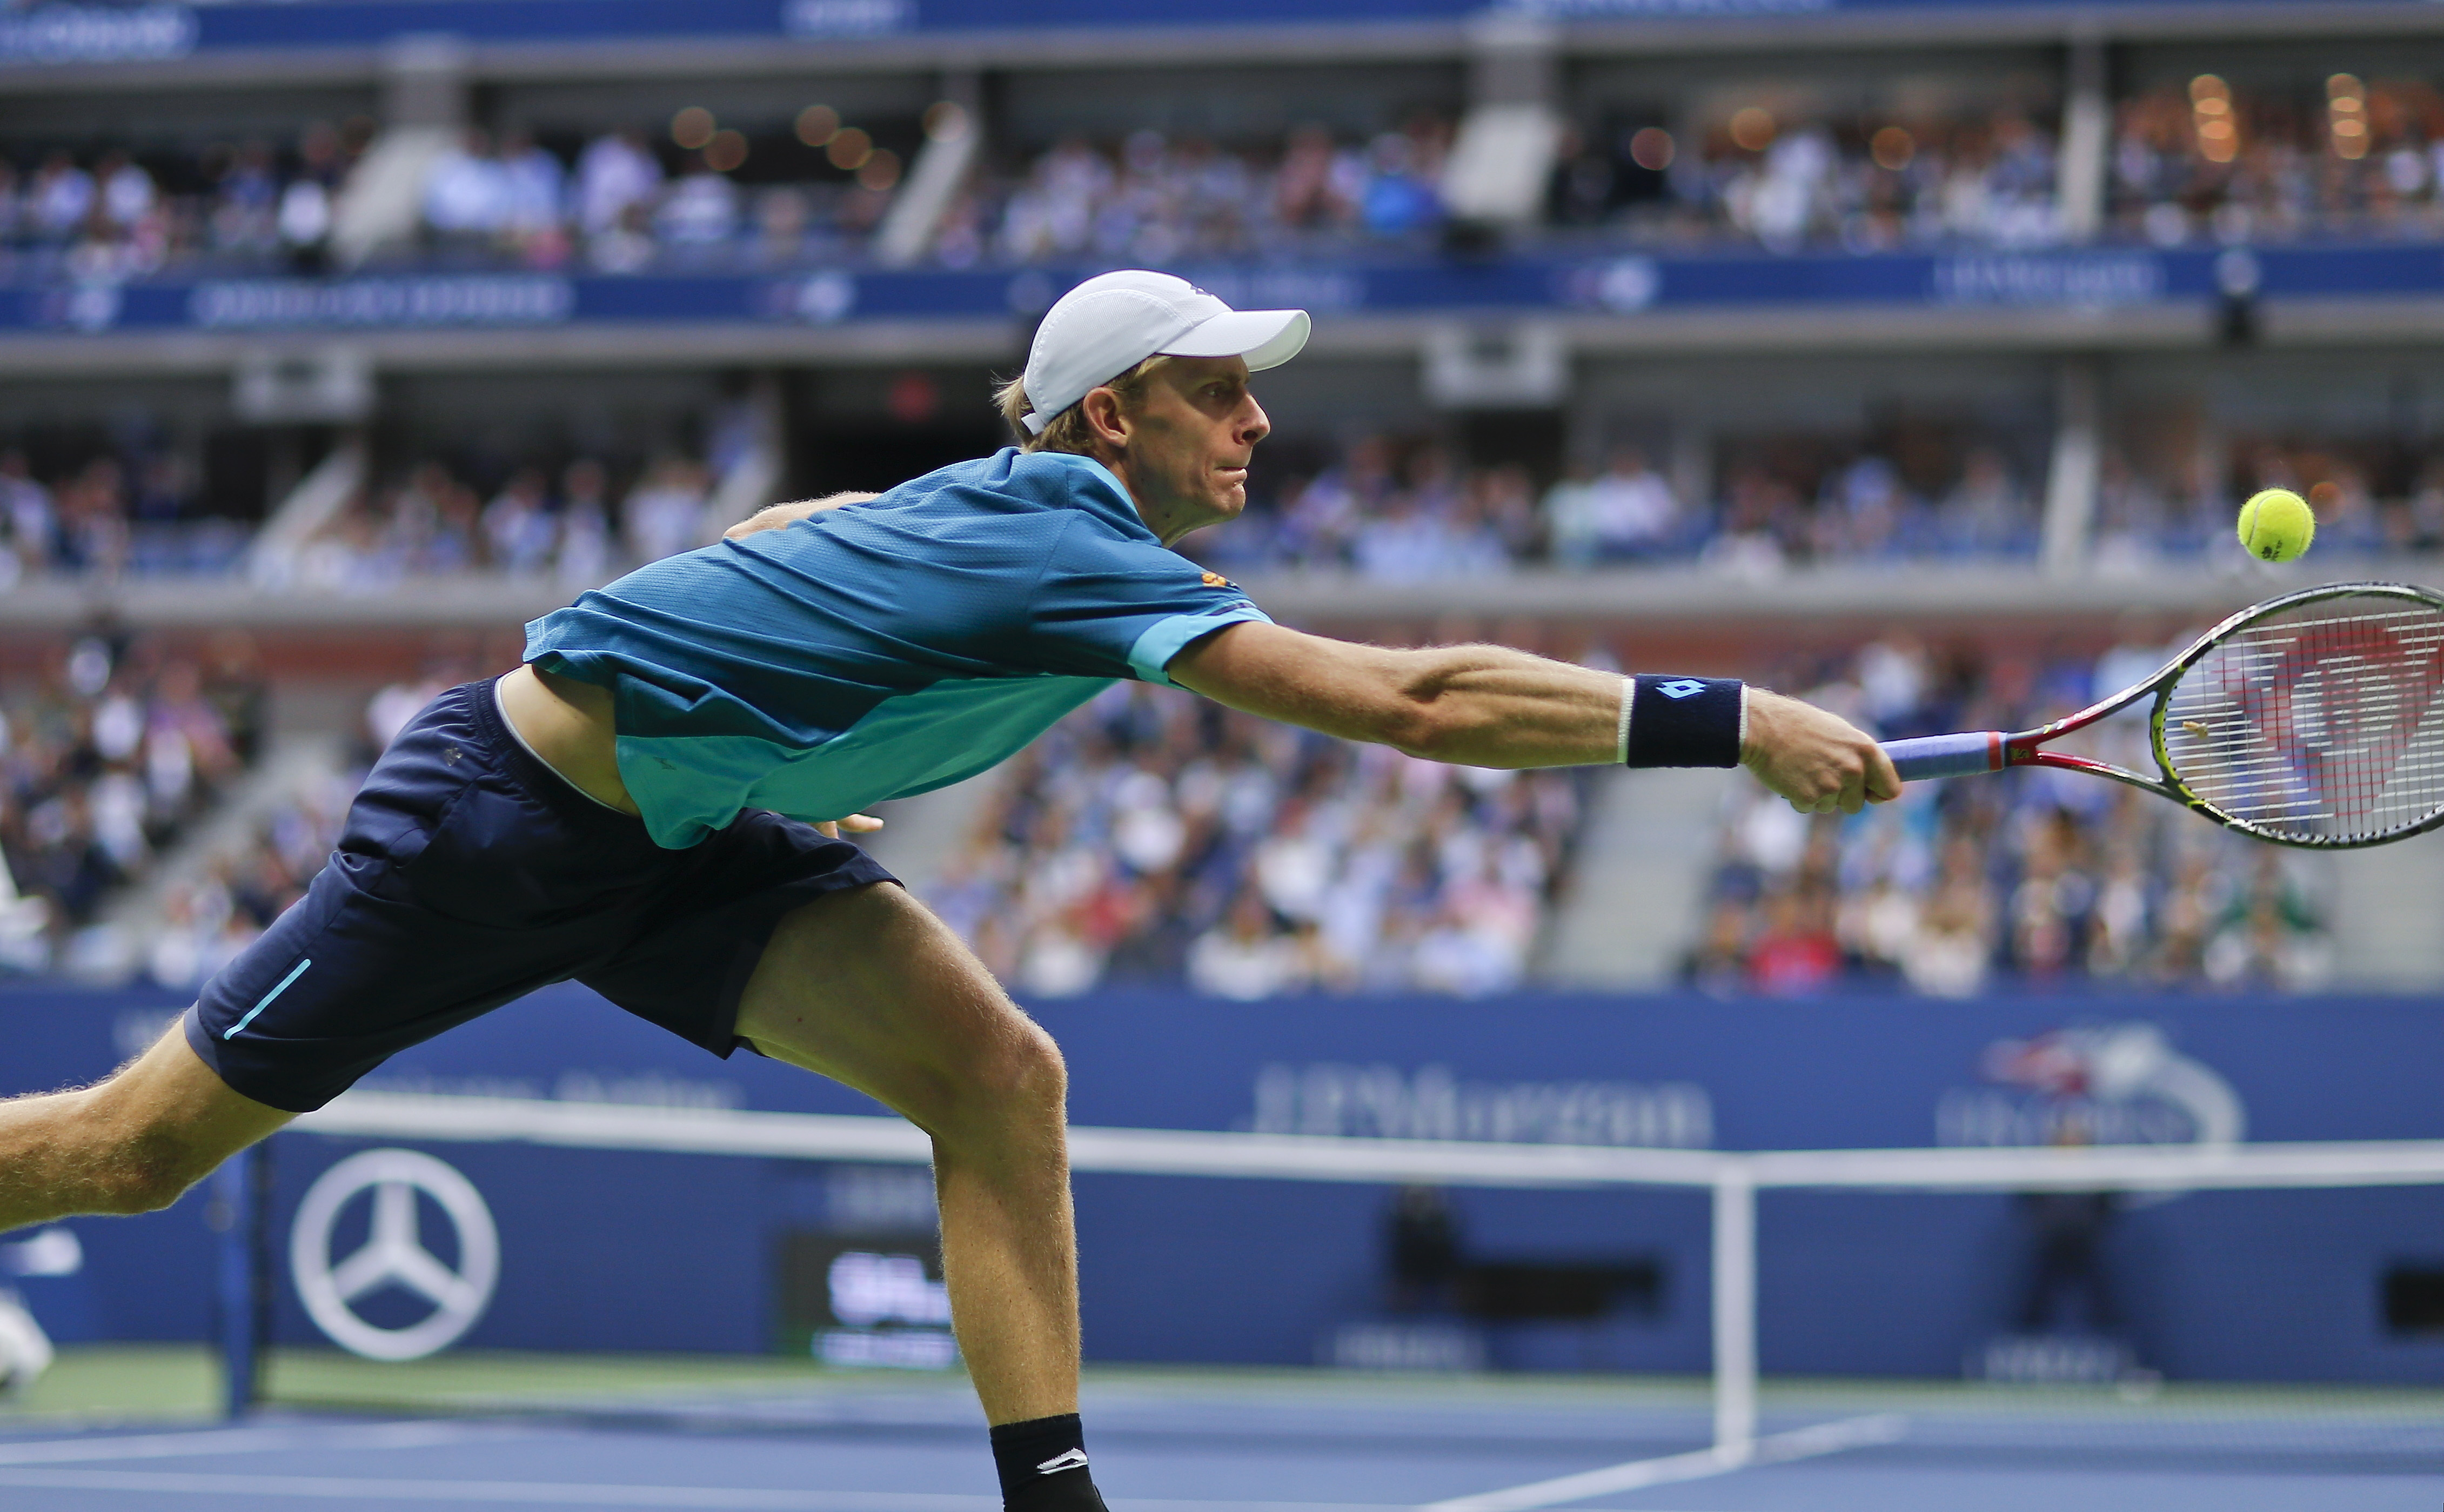 Kevin Anderson, of South Africa, returns a shot from Rafael Nadal, of Spain, during the men's singles final of the U.S. Open tennis tournament, Sunday, Sept. 10, 2017, in New York. (AP Photo/Andres Kudacki)